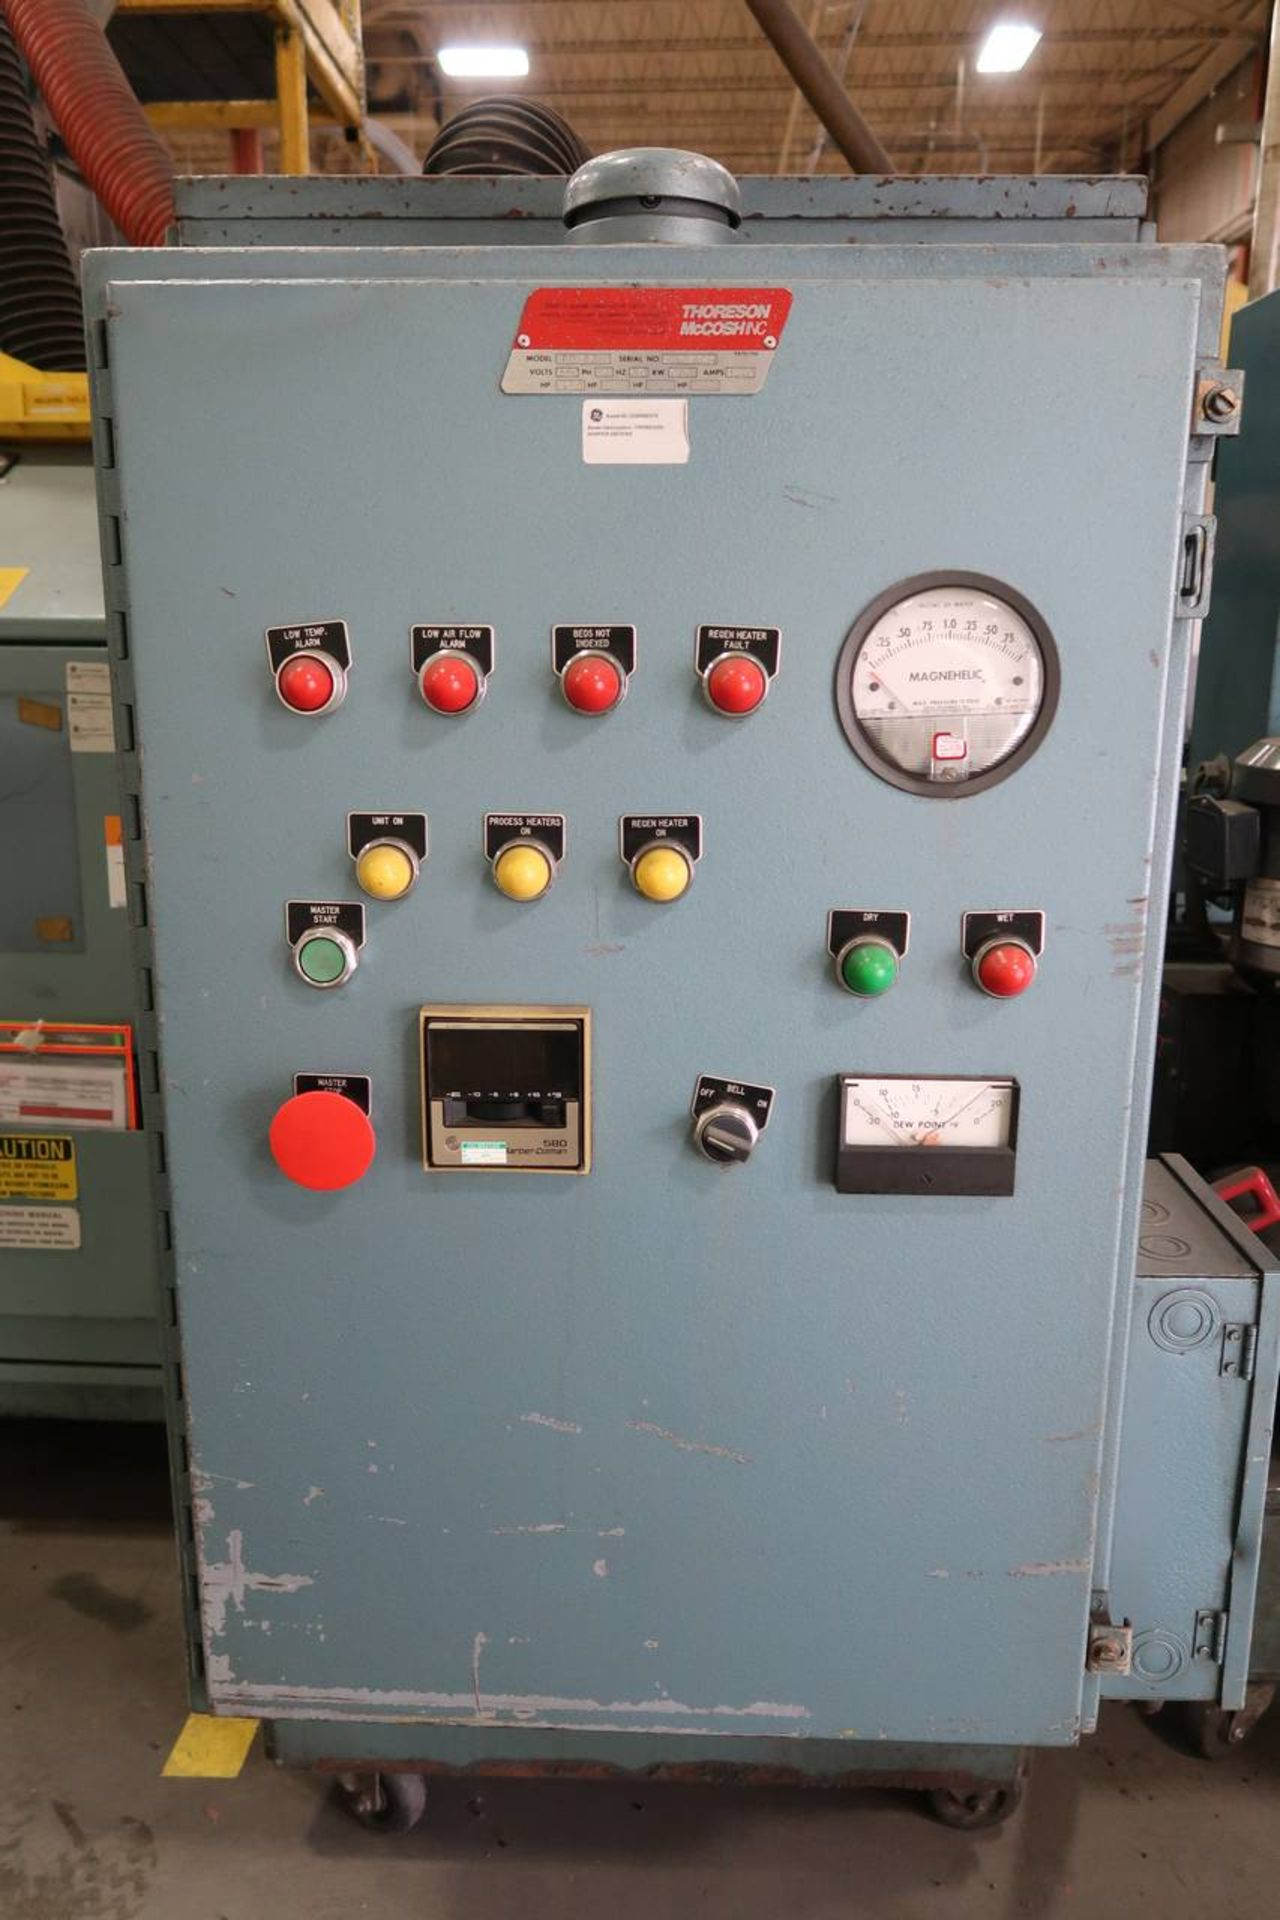 1986 HPM 400-TP-20 400-Ton Thermo Plastic Injection Molding Press - Image 38 of 40